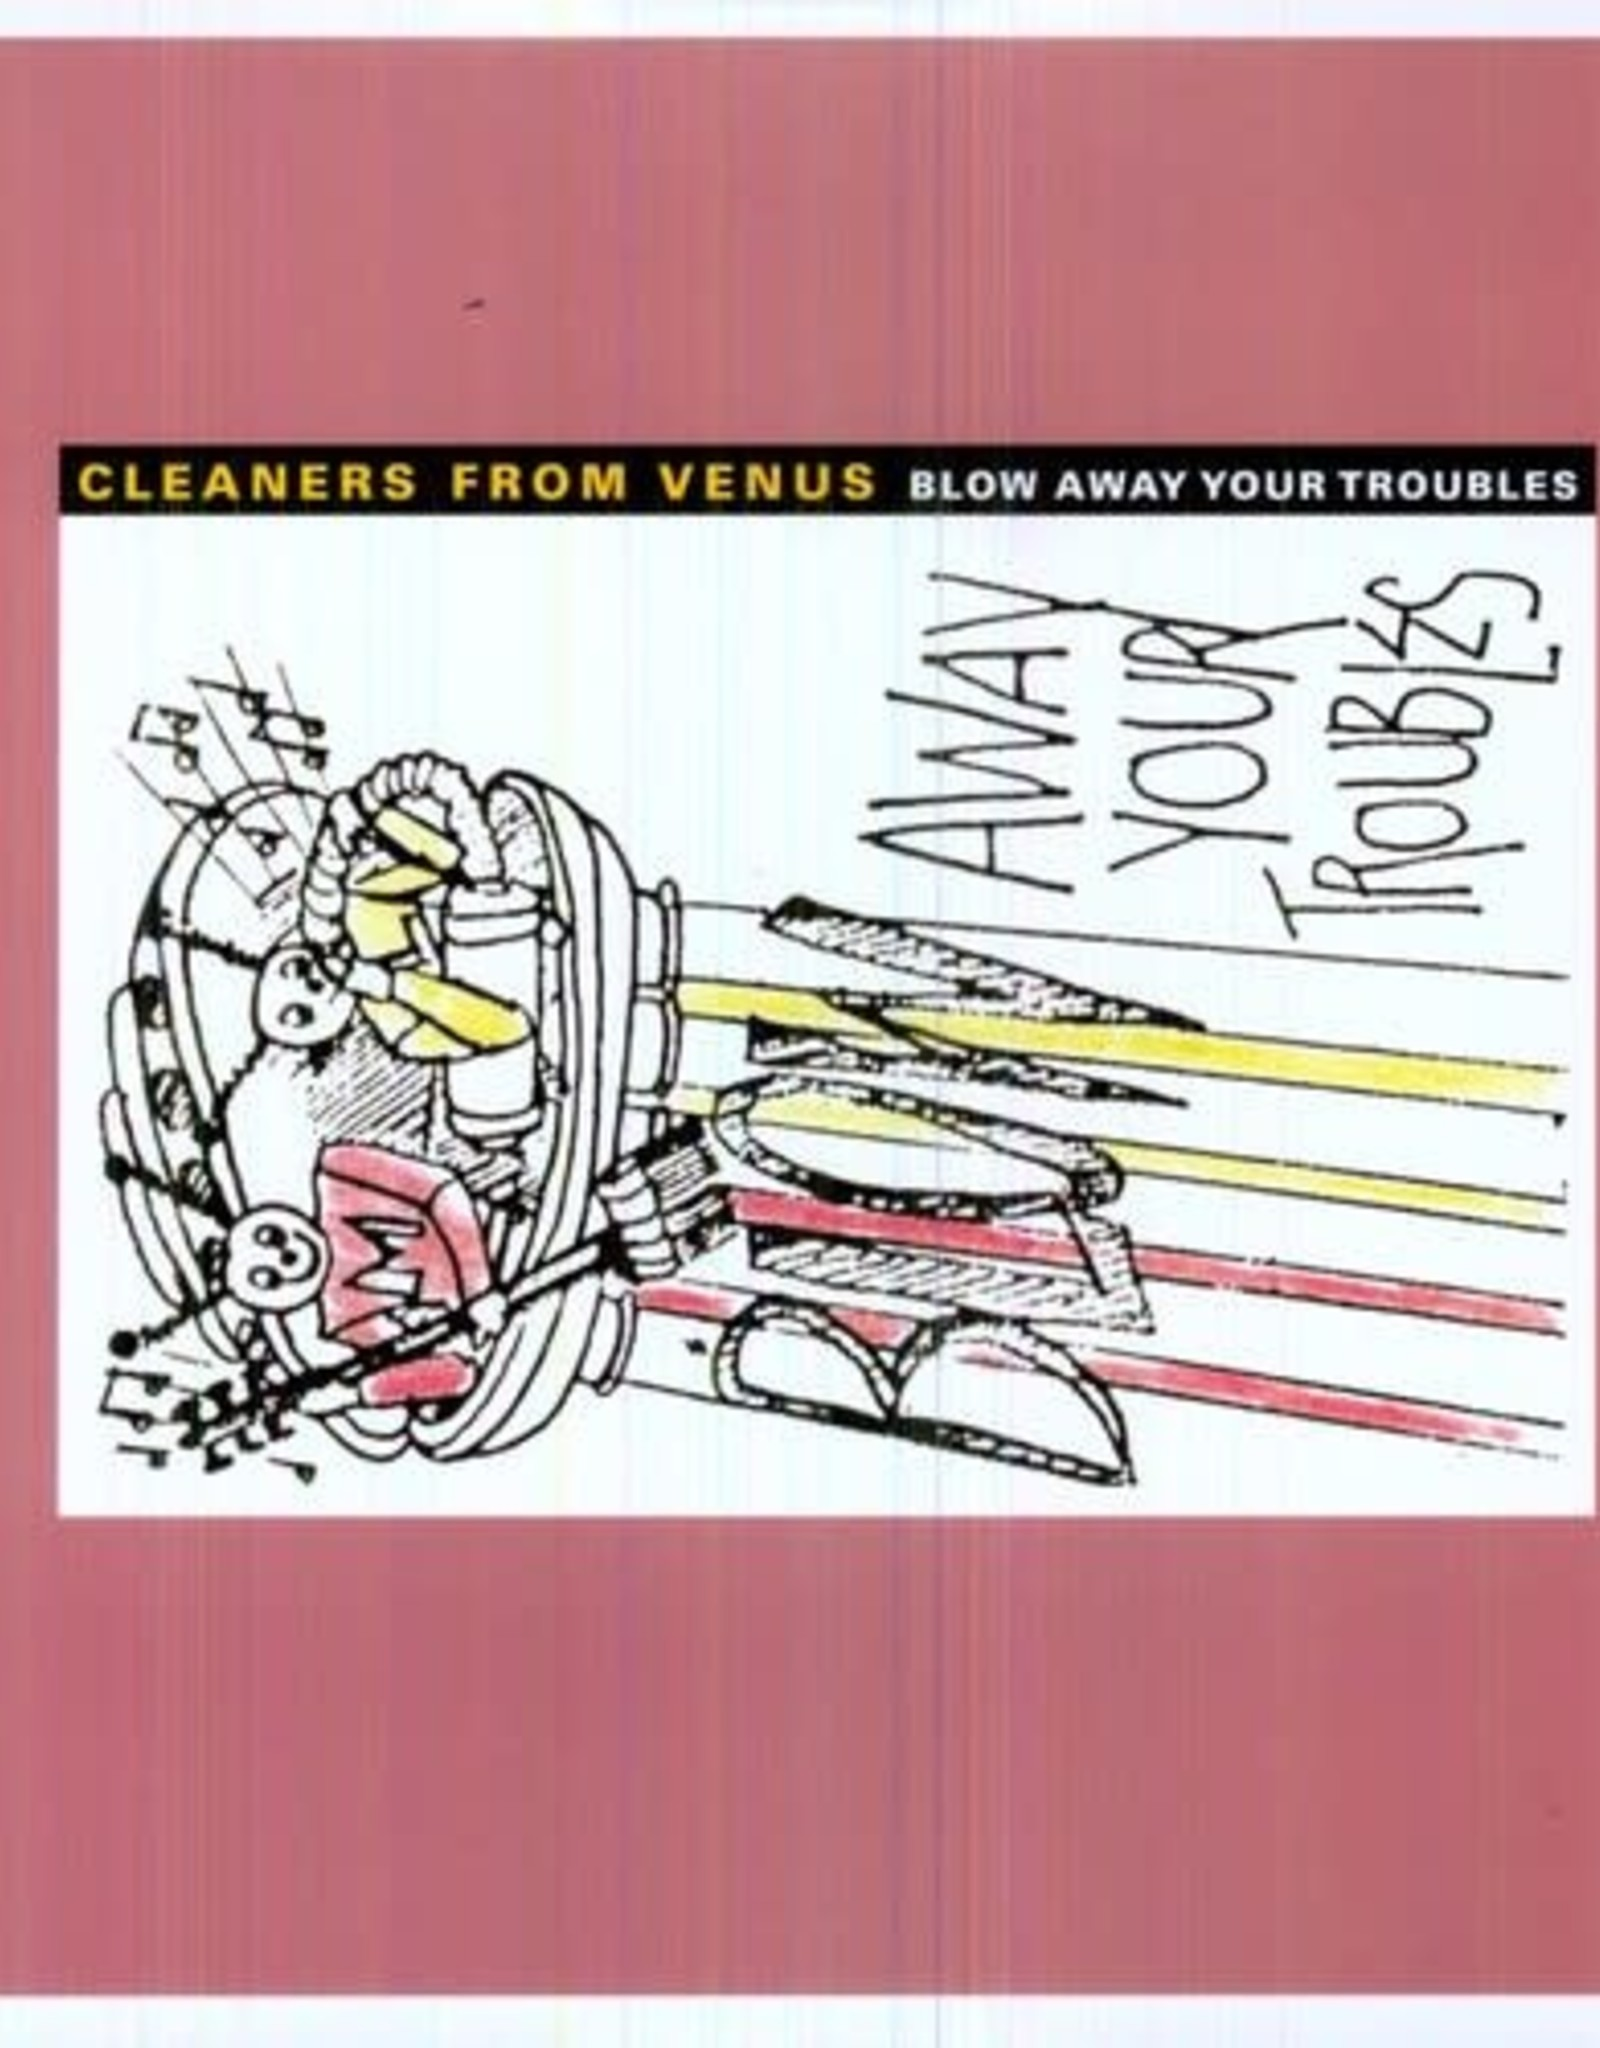 Cleaners From Venus - On Any Normal Monday